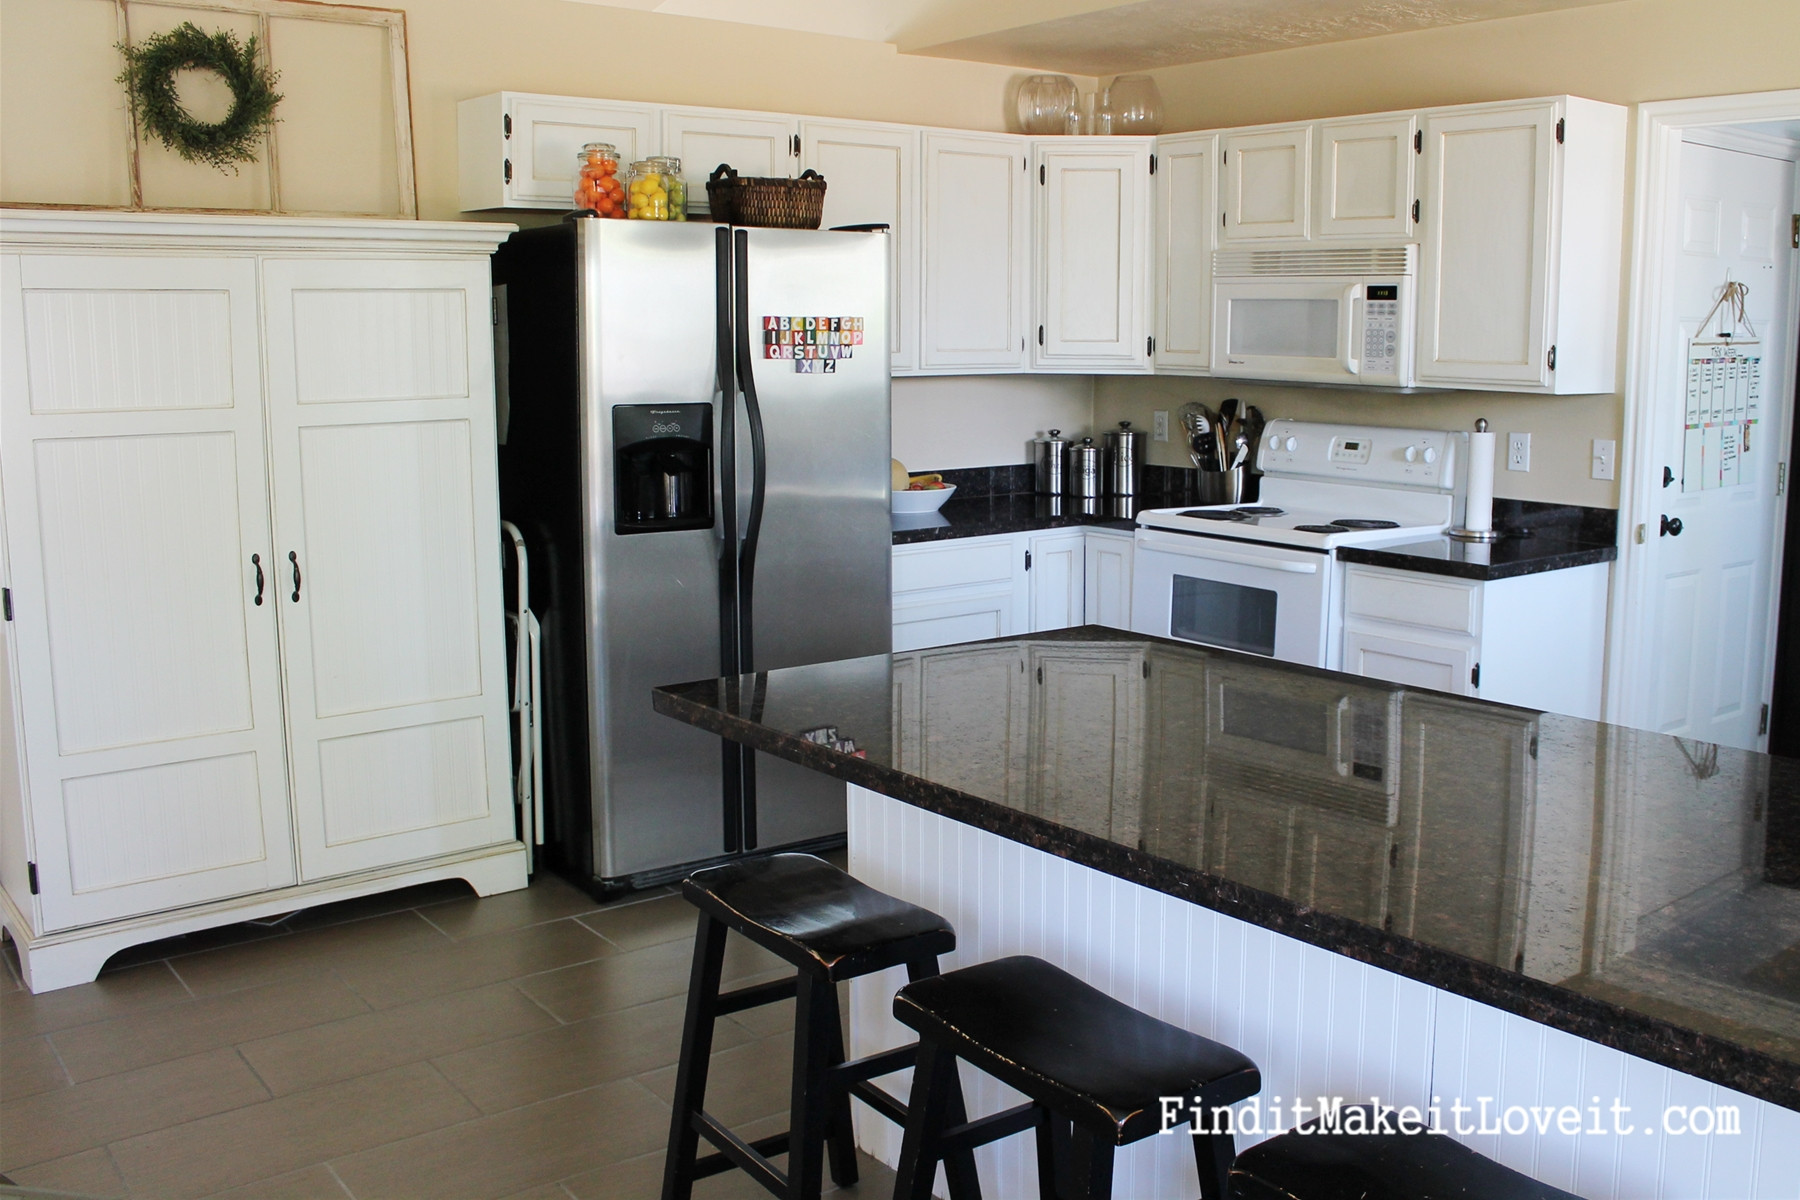 Best ideas about DIY Kitchen Cabinets Paint . Save or Pin Painted Kitchen Hutch Find it Make it Love it Now.